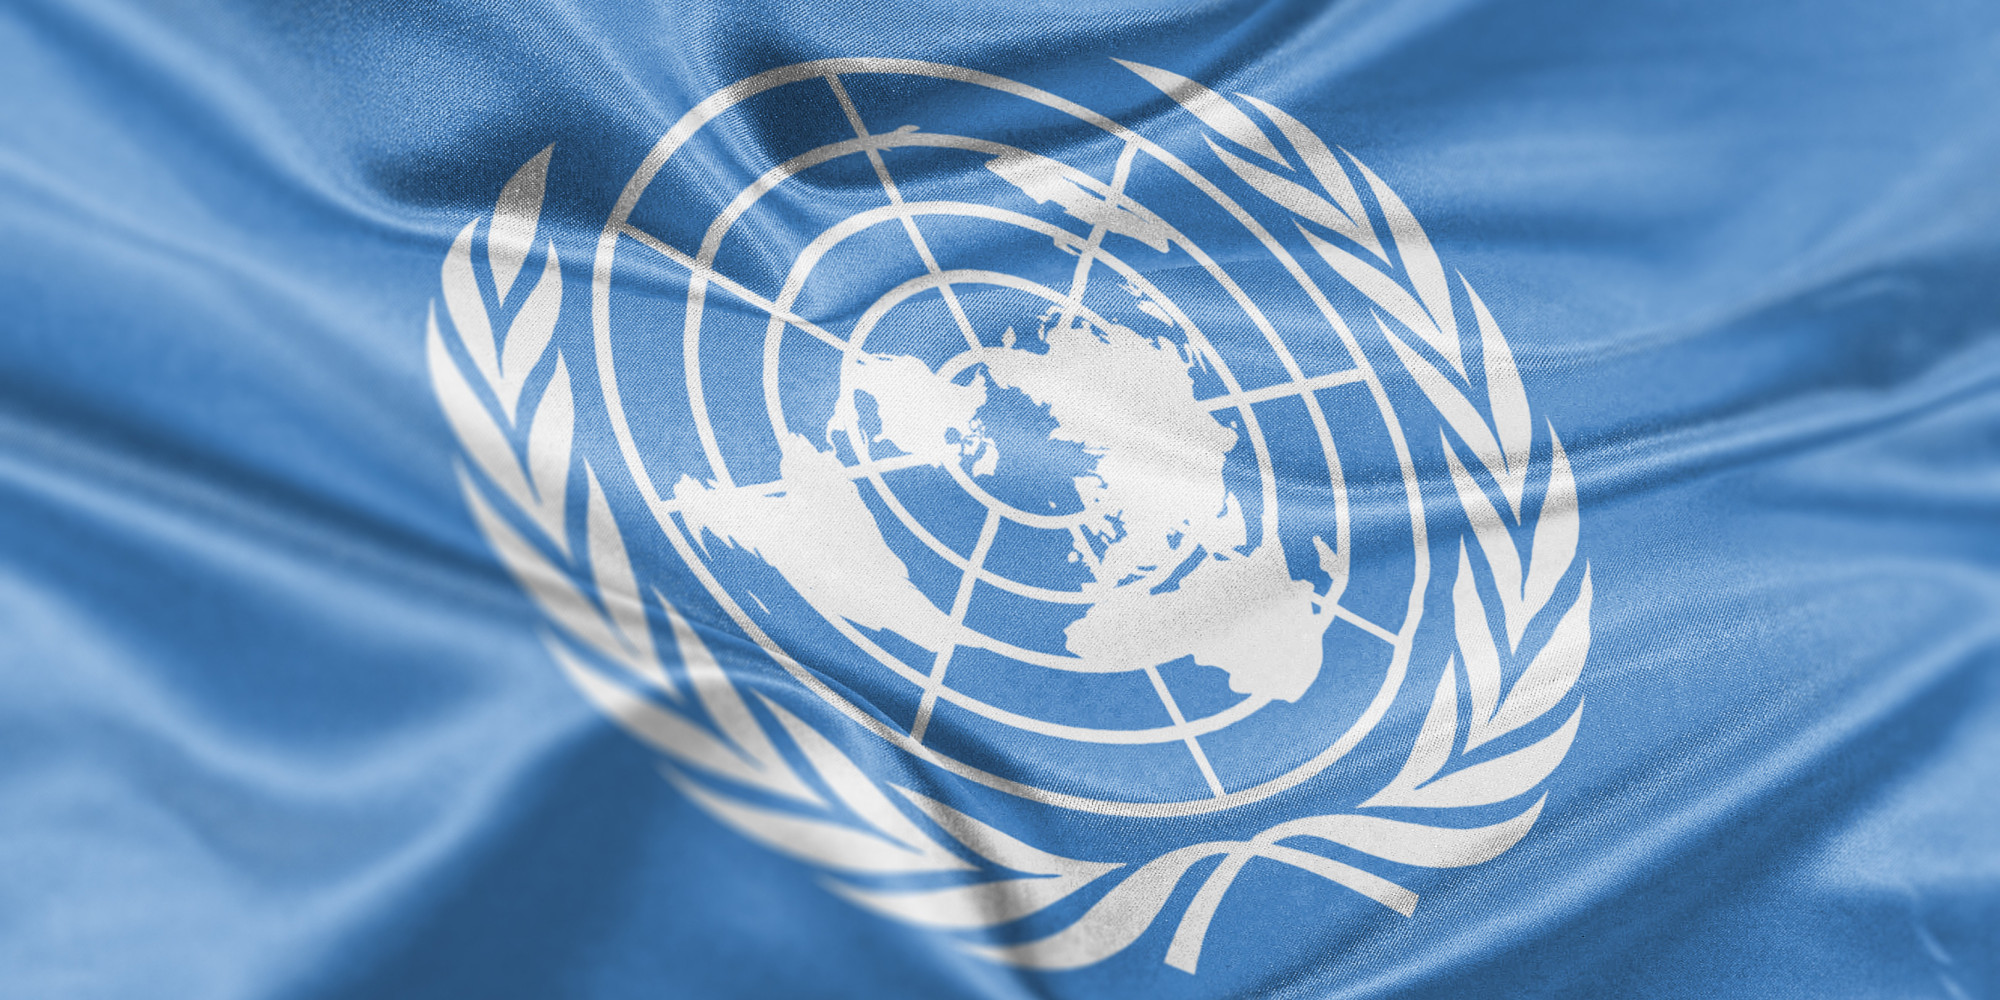 o-united-nations-facebook.jpg